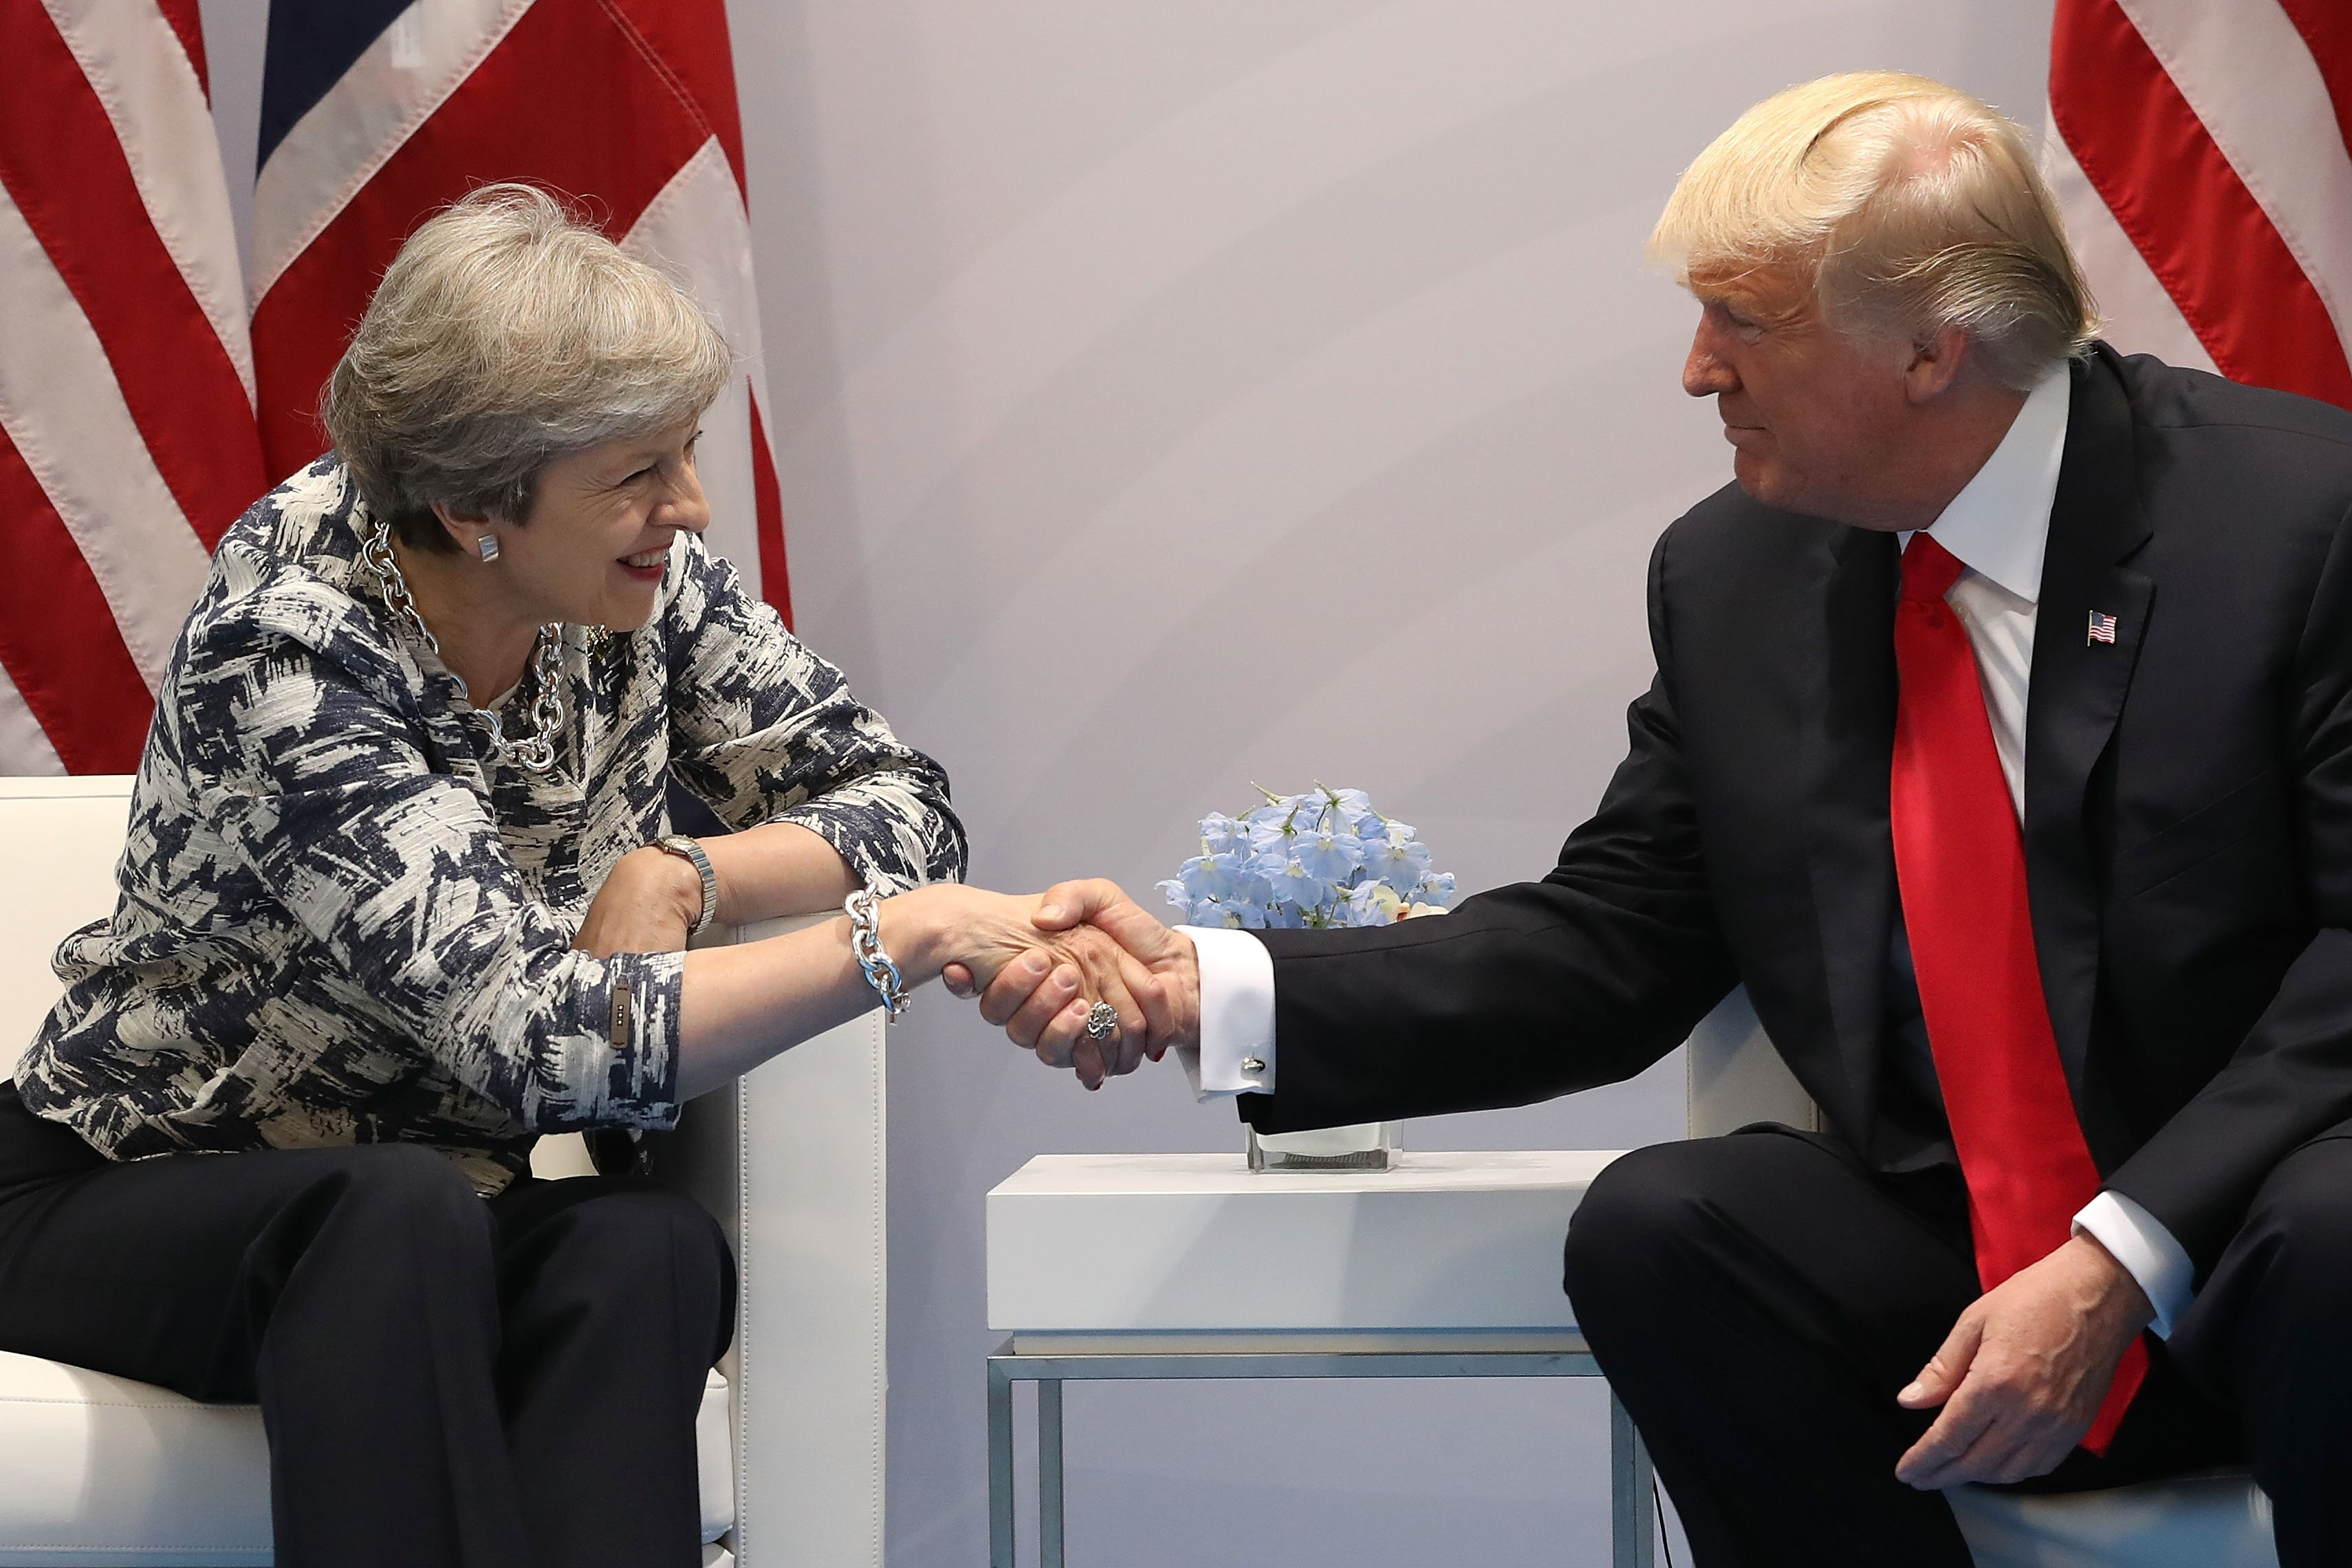 Theresa May greeting U.S Donald Trump at the 2017 G20 summit in Hamburg, Germany | Photo: Getty Images